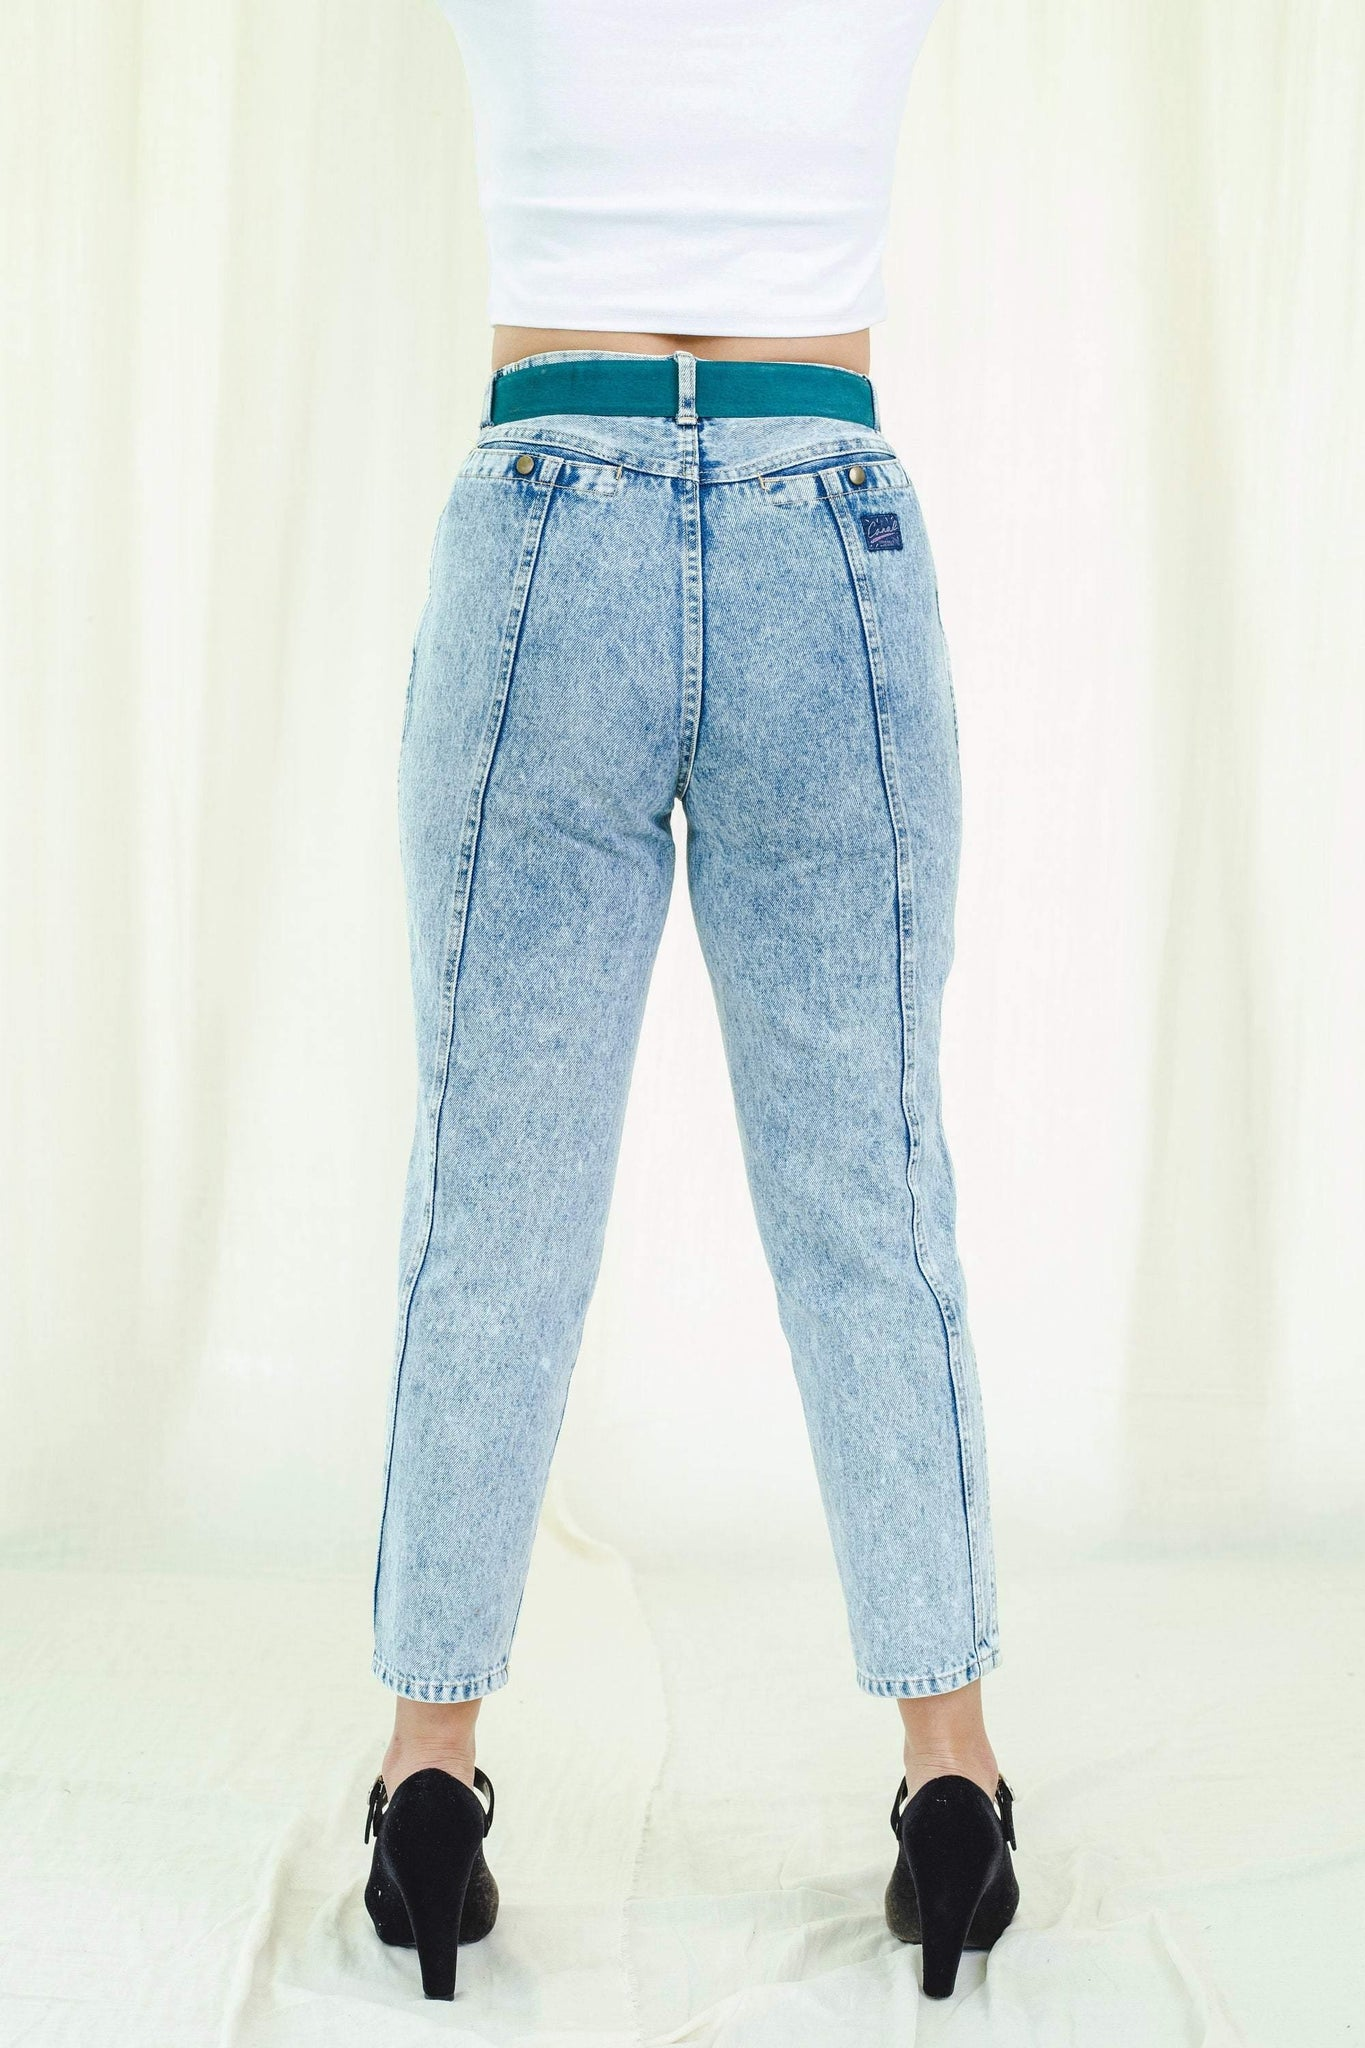 Jeans | Acid-washed | Vintage 1980s - Sugar & Cream Vintage